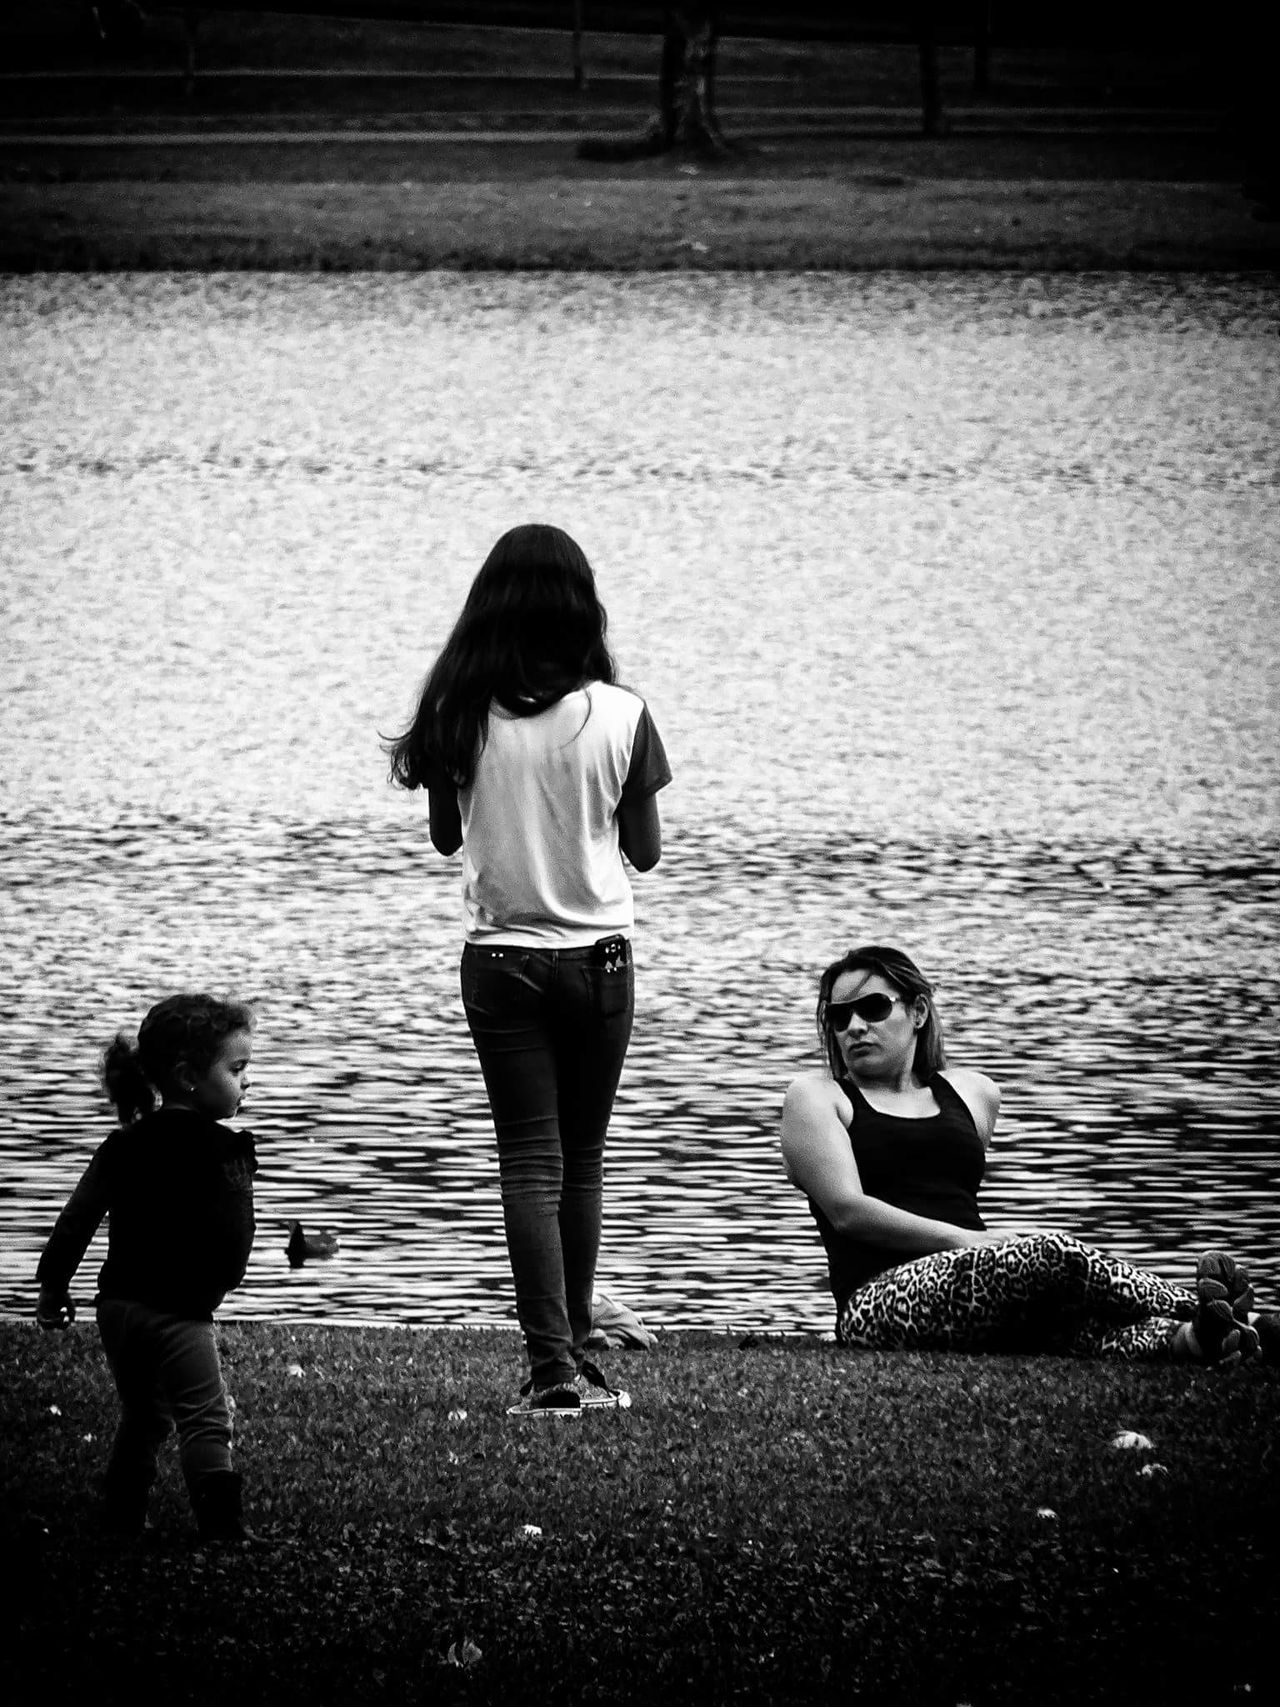 Lifestyles Casual Clothing Full Length Rear View Leisure Activity Childhood Child Crouching Innocence Water Riverbank Togetherness Person Day Carefree Looking Blackandwhite Black And White B L A C K A N D W H I T E Black & White Blackandwhite Photography Black&white Blackandwhitephotography Beautiful Nature Solitude